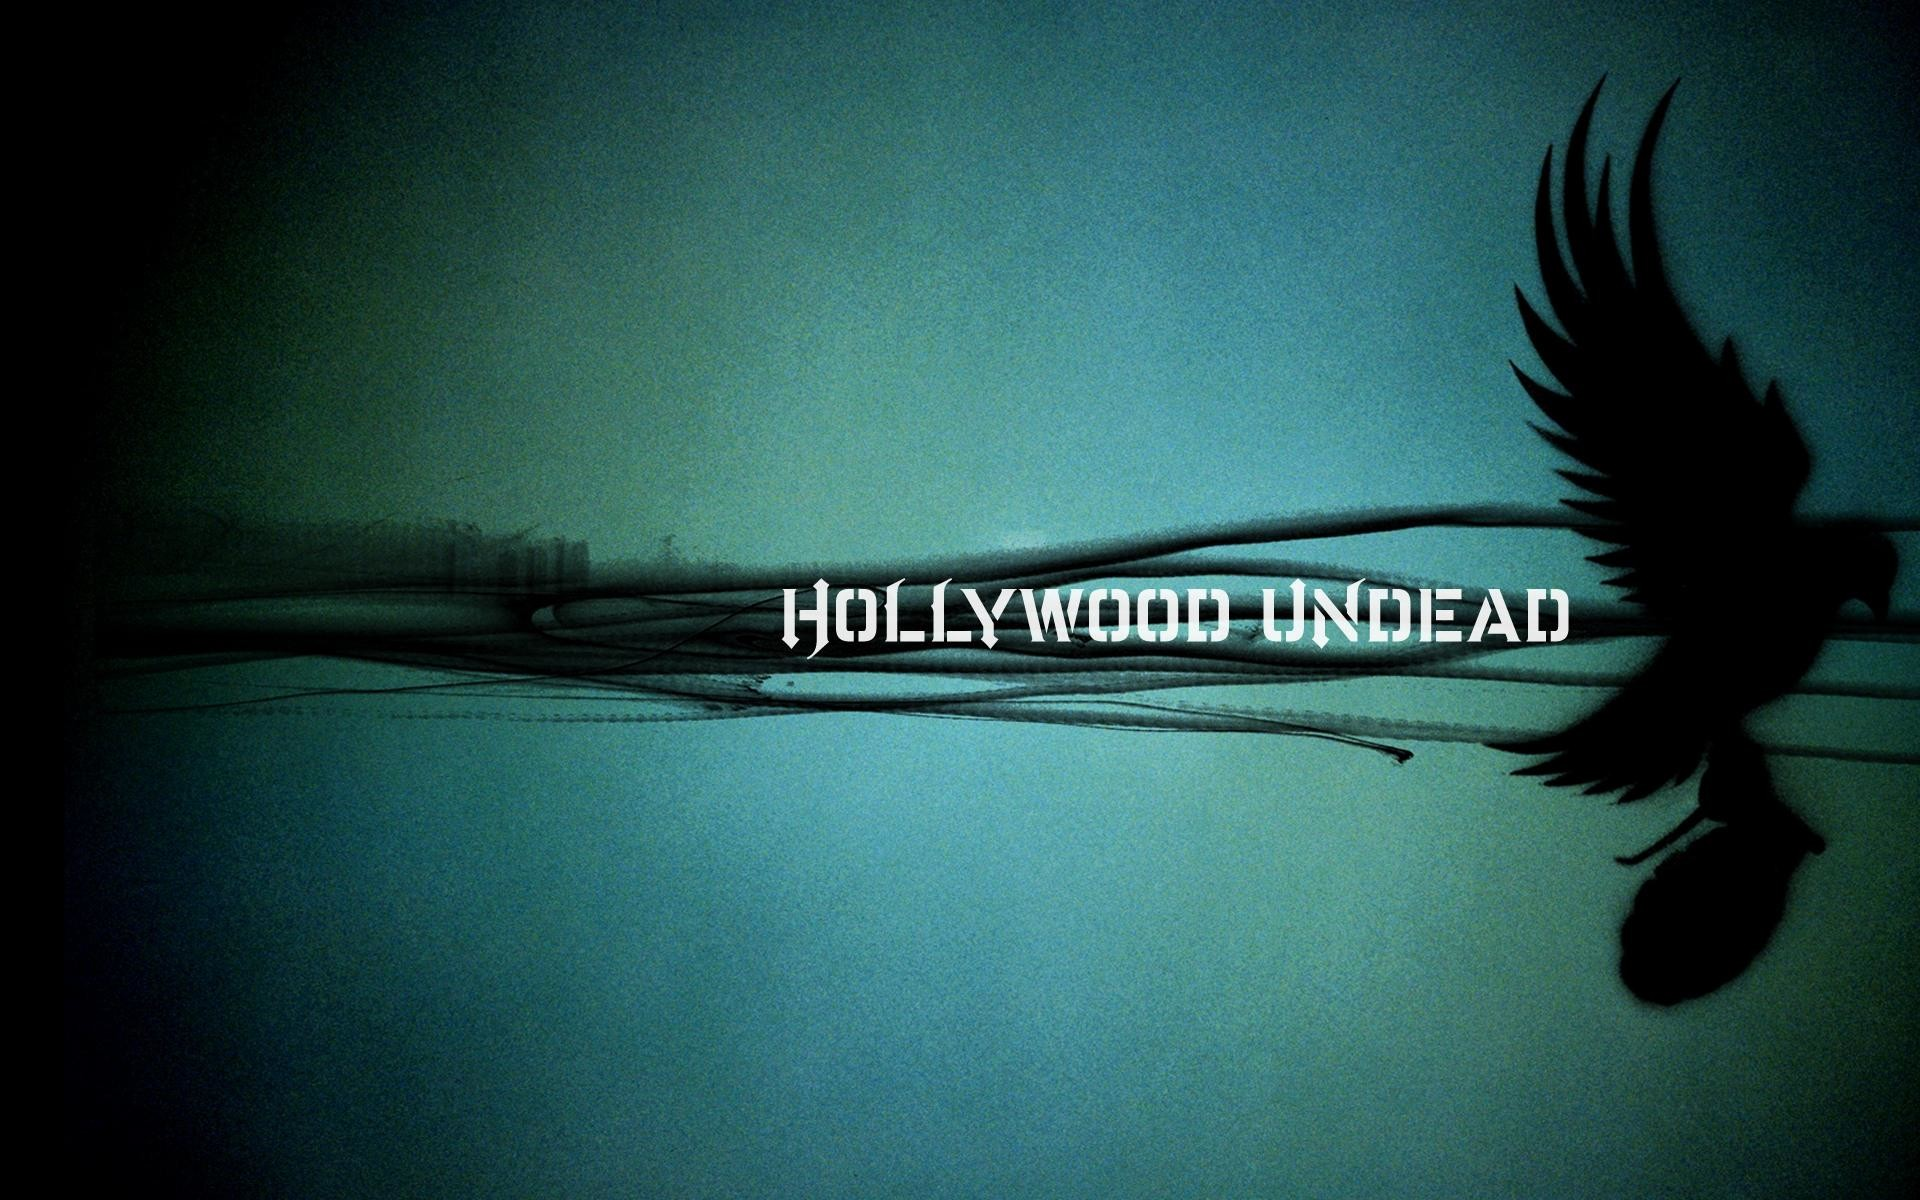 1920x1200 Free Download Hollywood Undead Backgrounds - wallpaper.wiki HD Hollywood  Undead Backgrounds PIC WPE007348